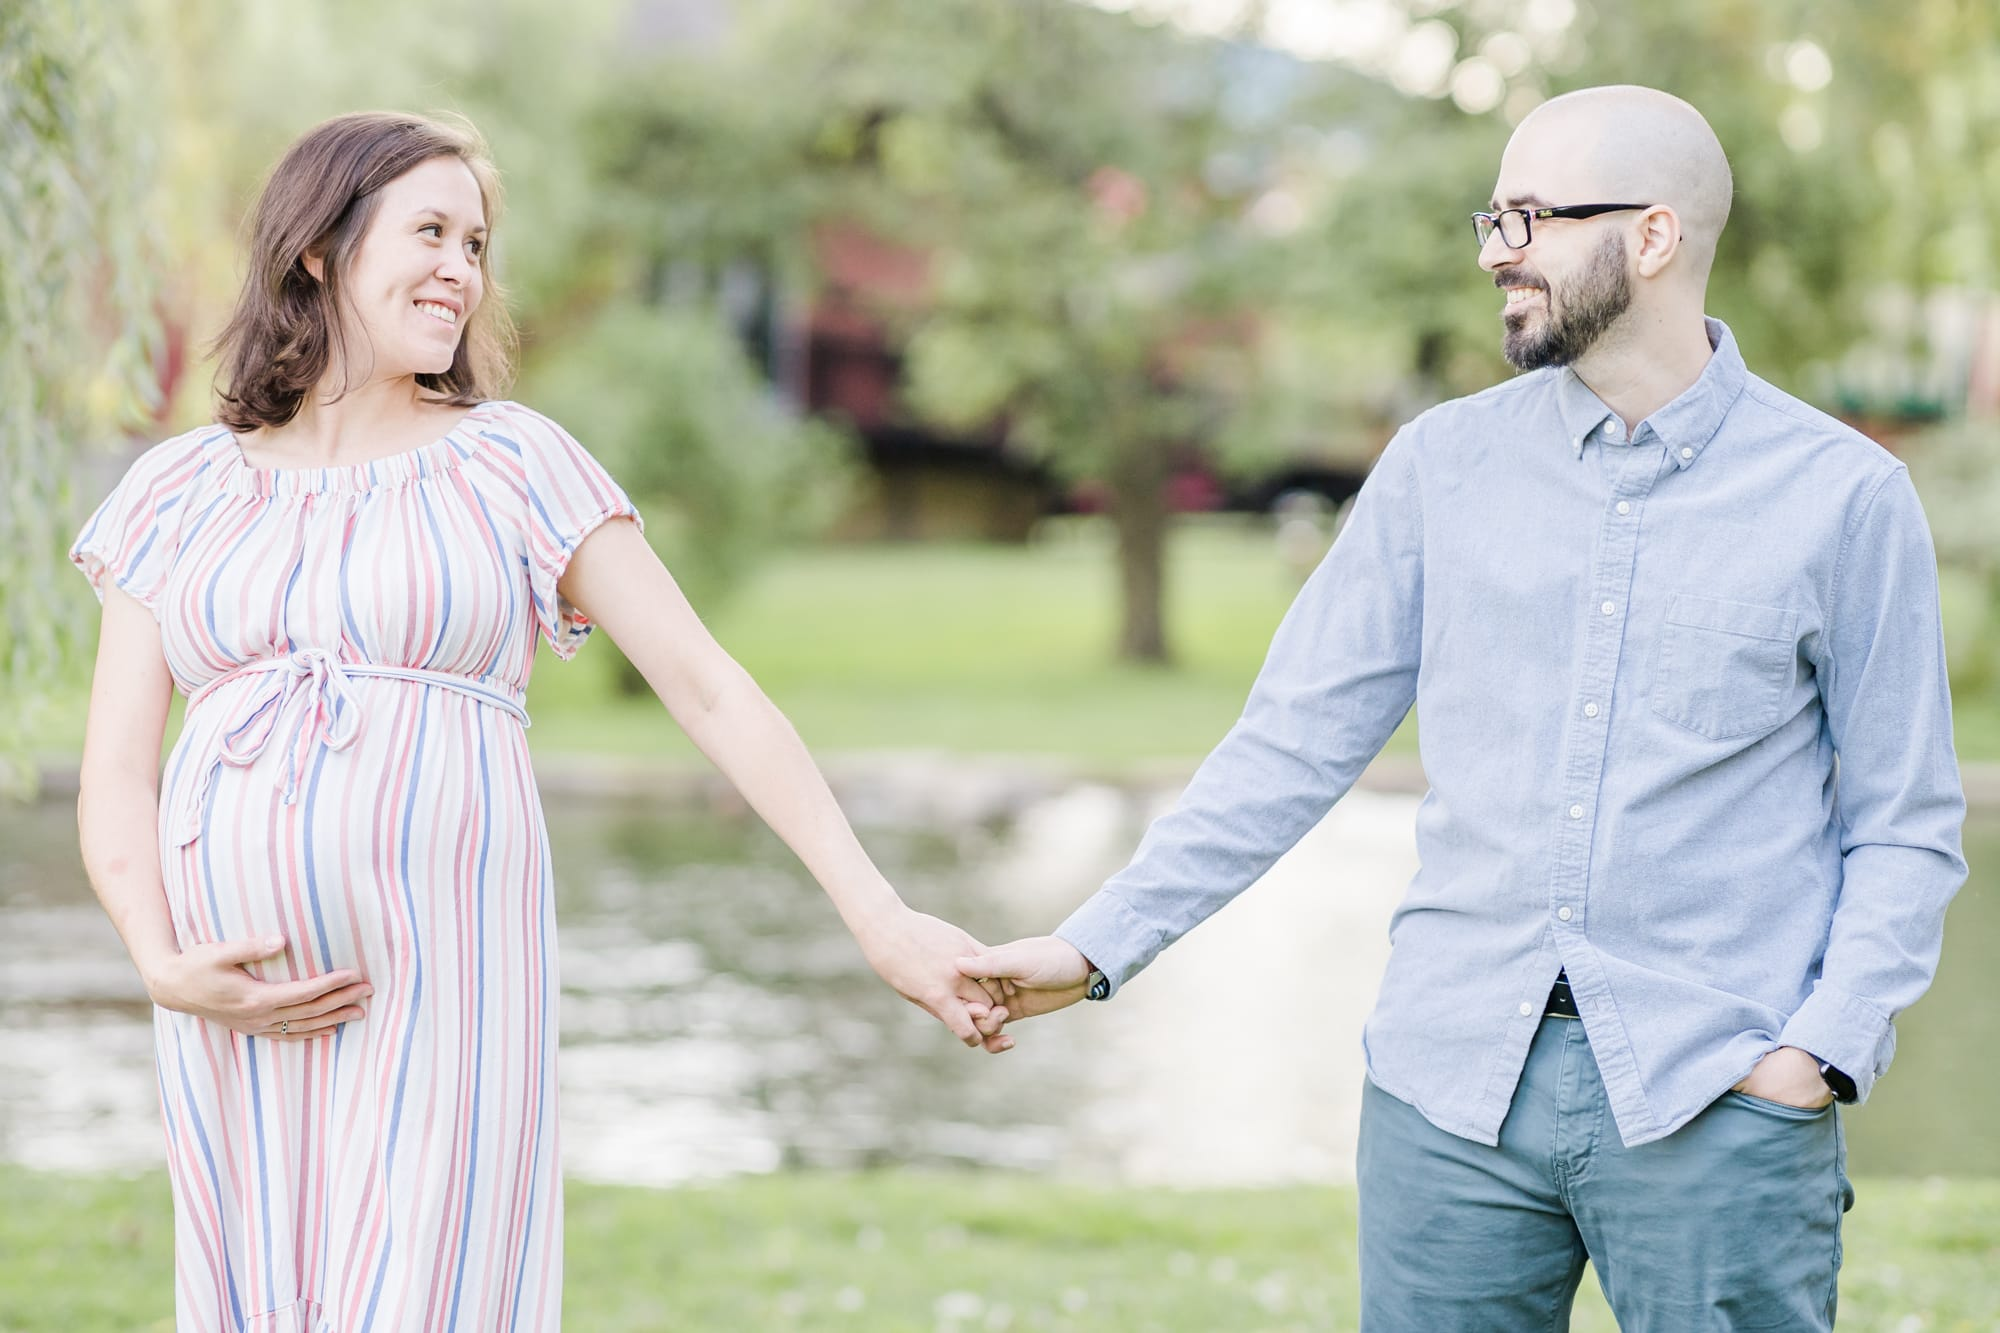 Maternity photos at Talleyrand Park in Bellefonte